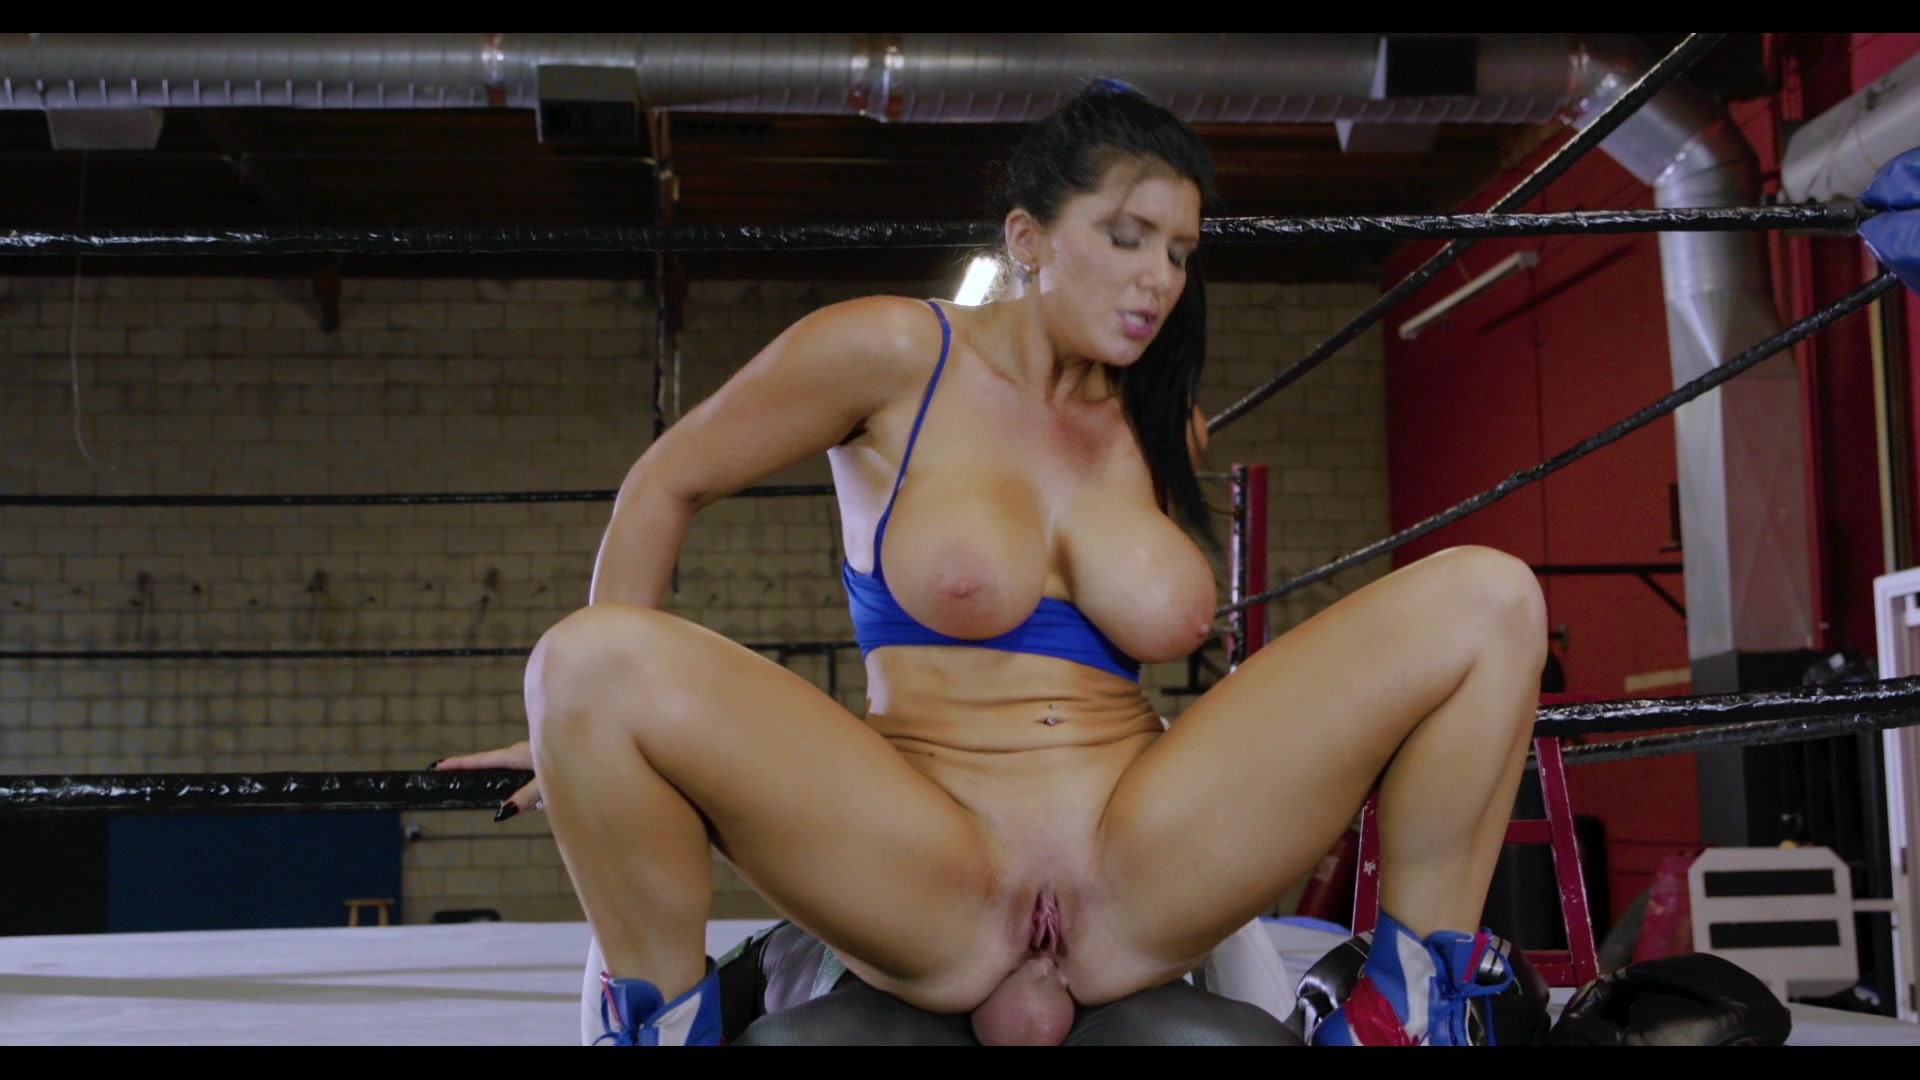 Scene with Xander Corvus and Romi Rain - image 18 out of 20